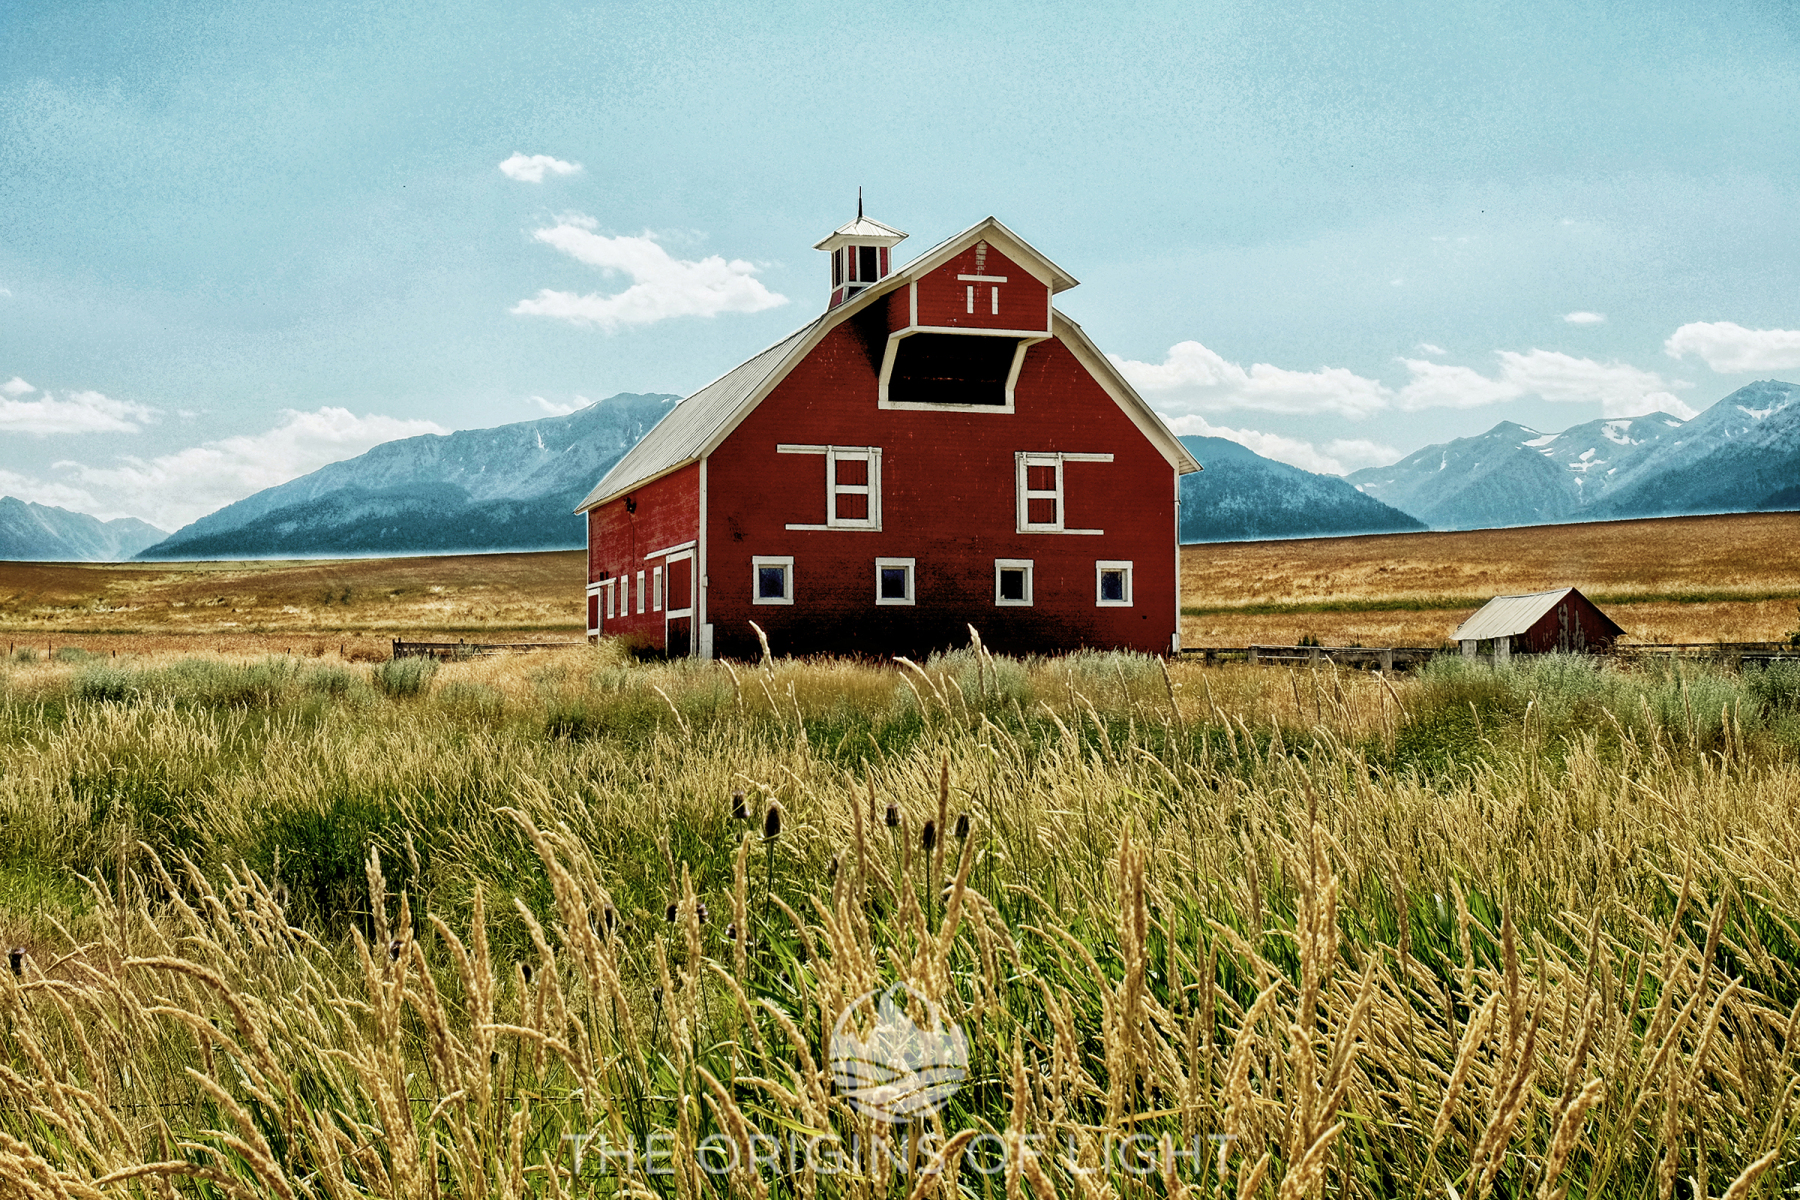 Red Barn Amongst Wheat, Joseph, Oregon